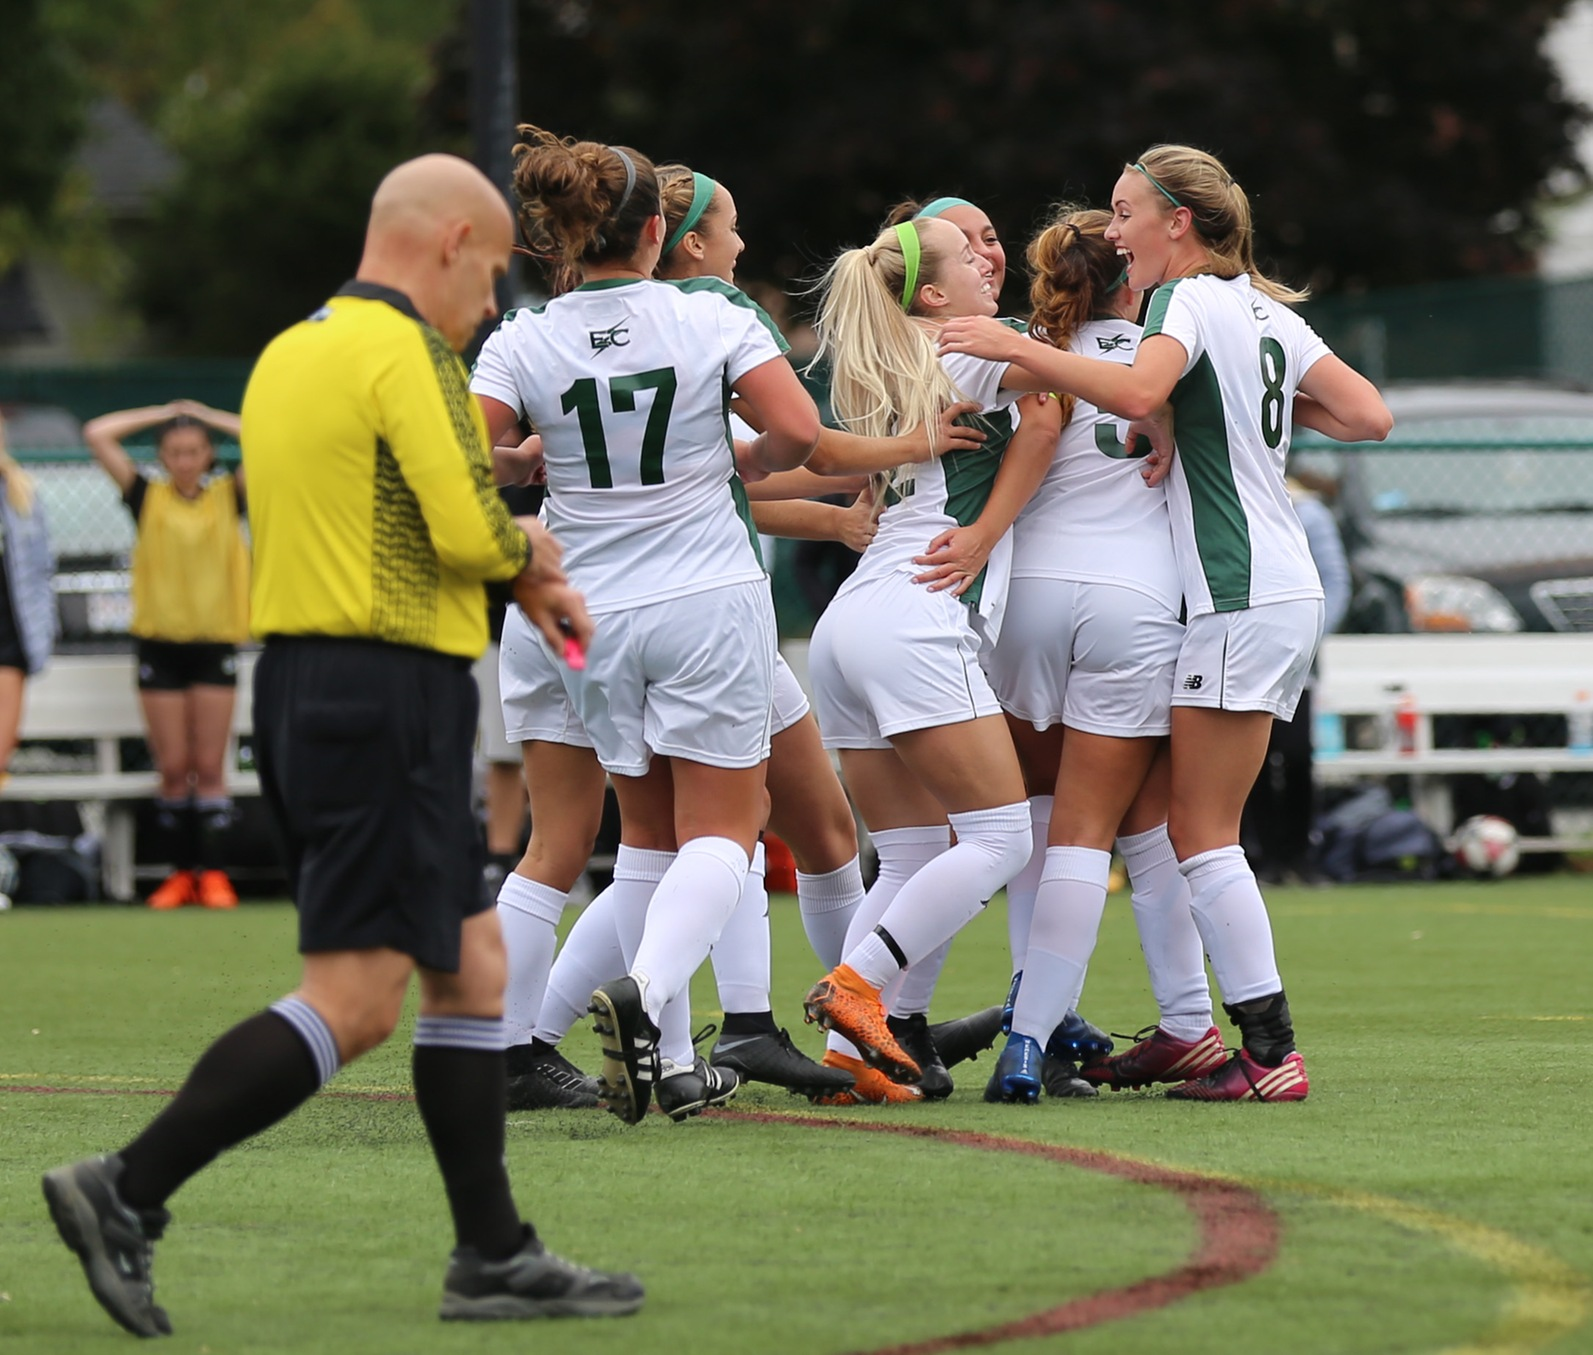 Blazers Defeat Pilgrims In 2-1 Thriller, Advance to NECC Championship